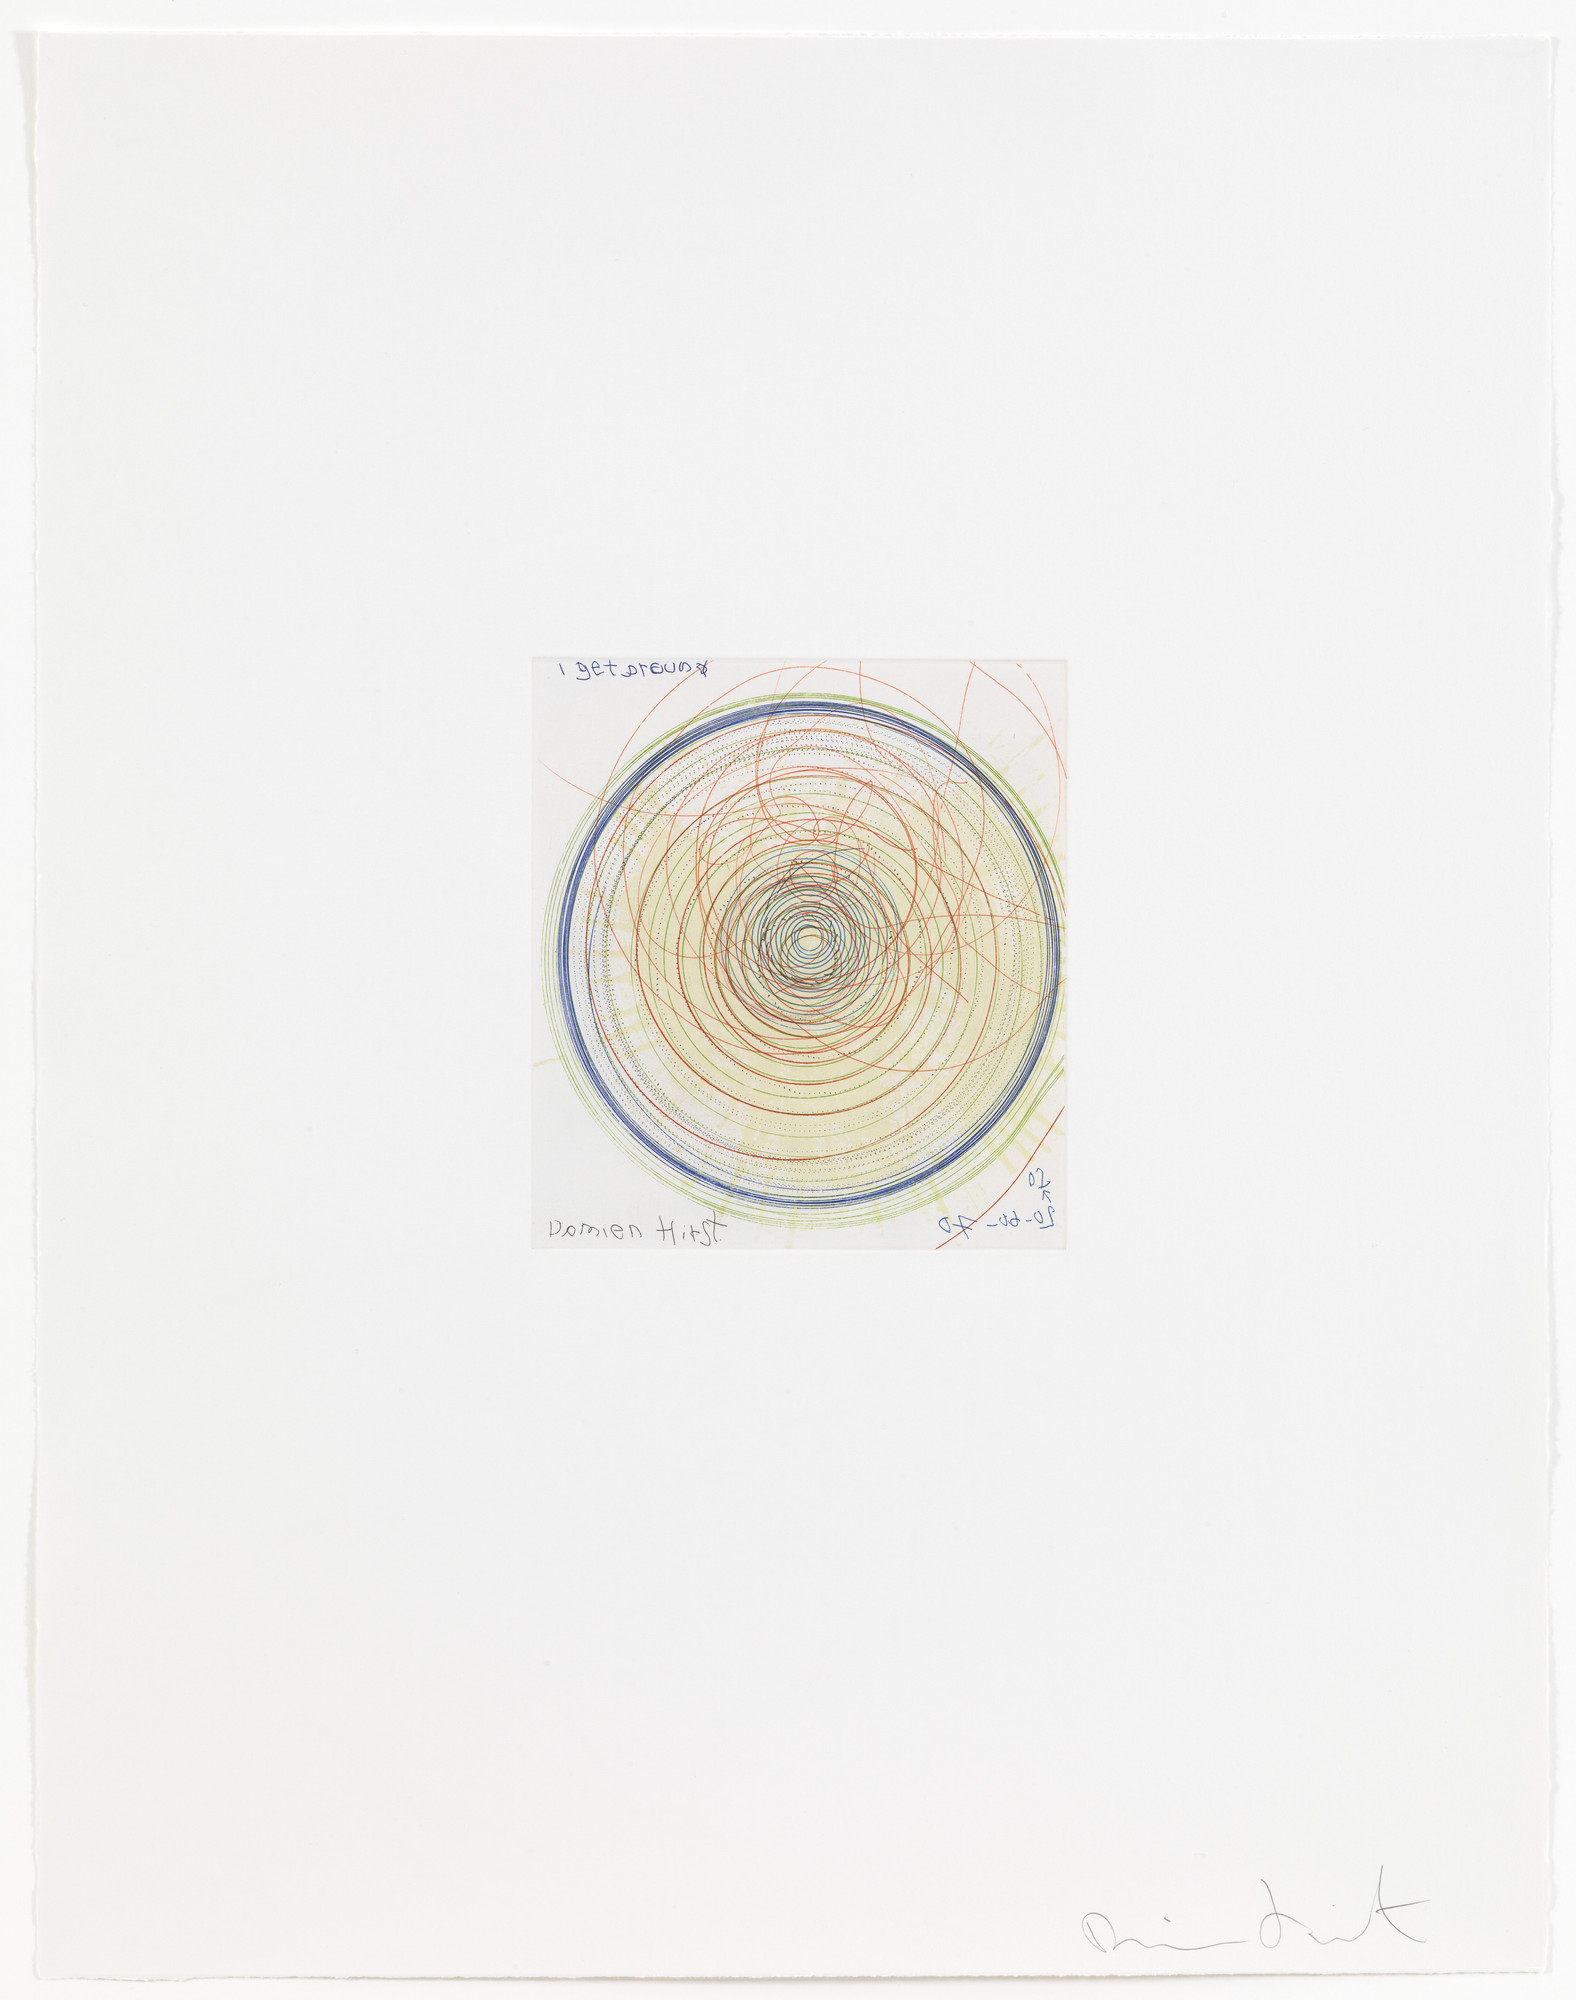 Damien Hirst. I get around from In a Spin, the Action of the World on Things, Volume 1. 2002